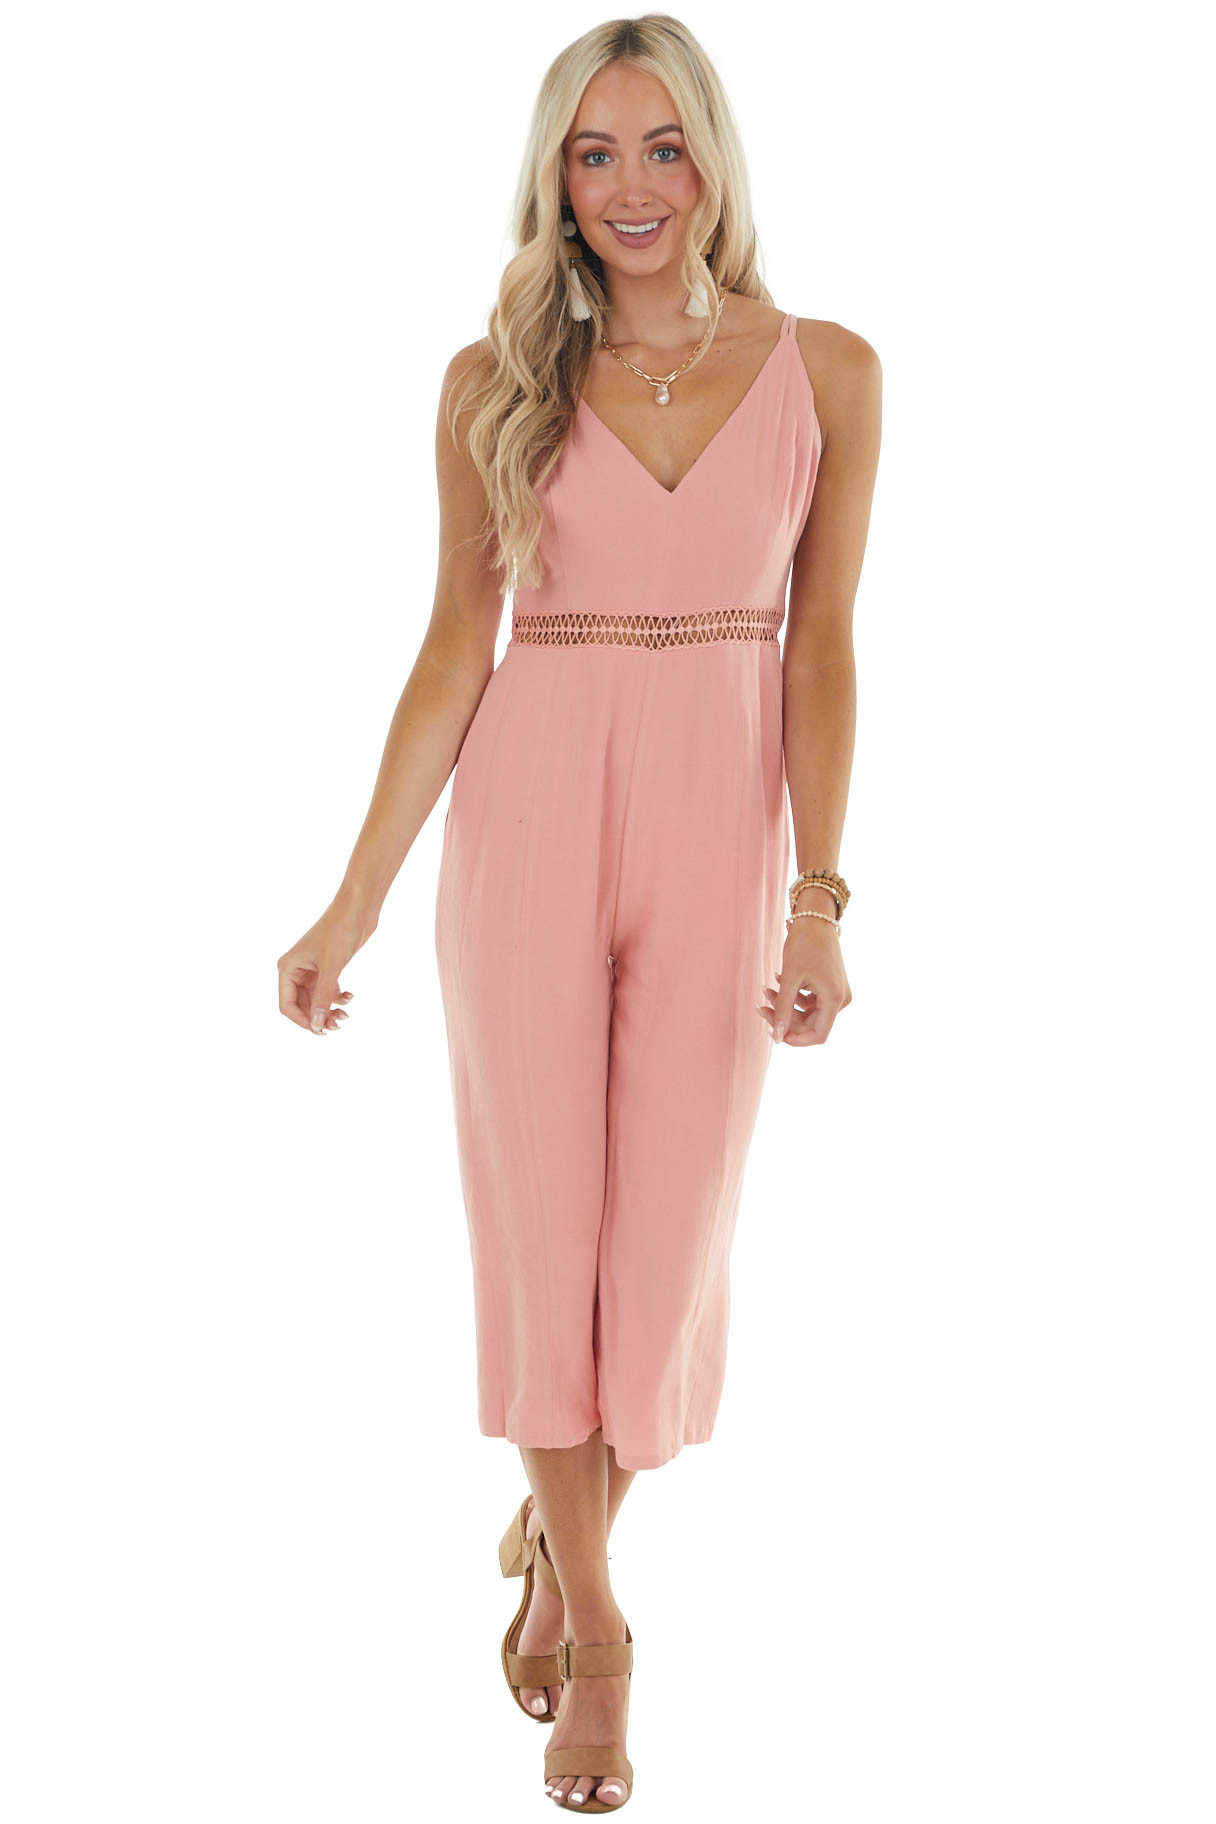 Coral Sleeveless Jumpsuit with Lace Details on Waist